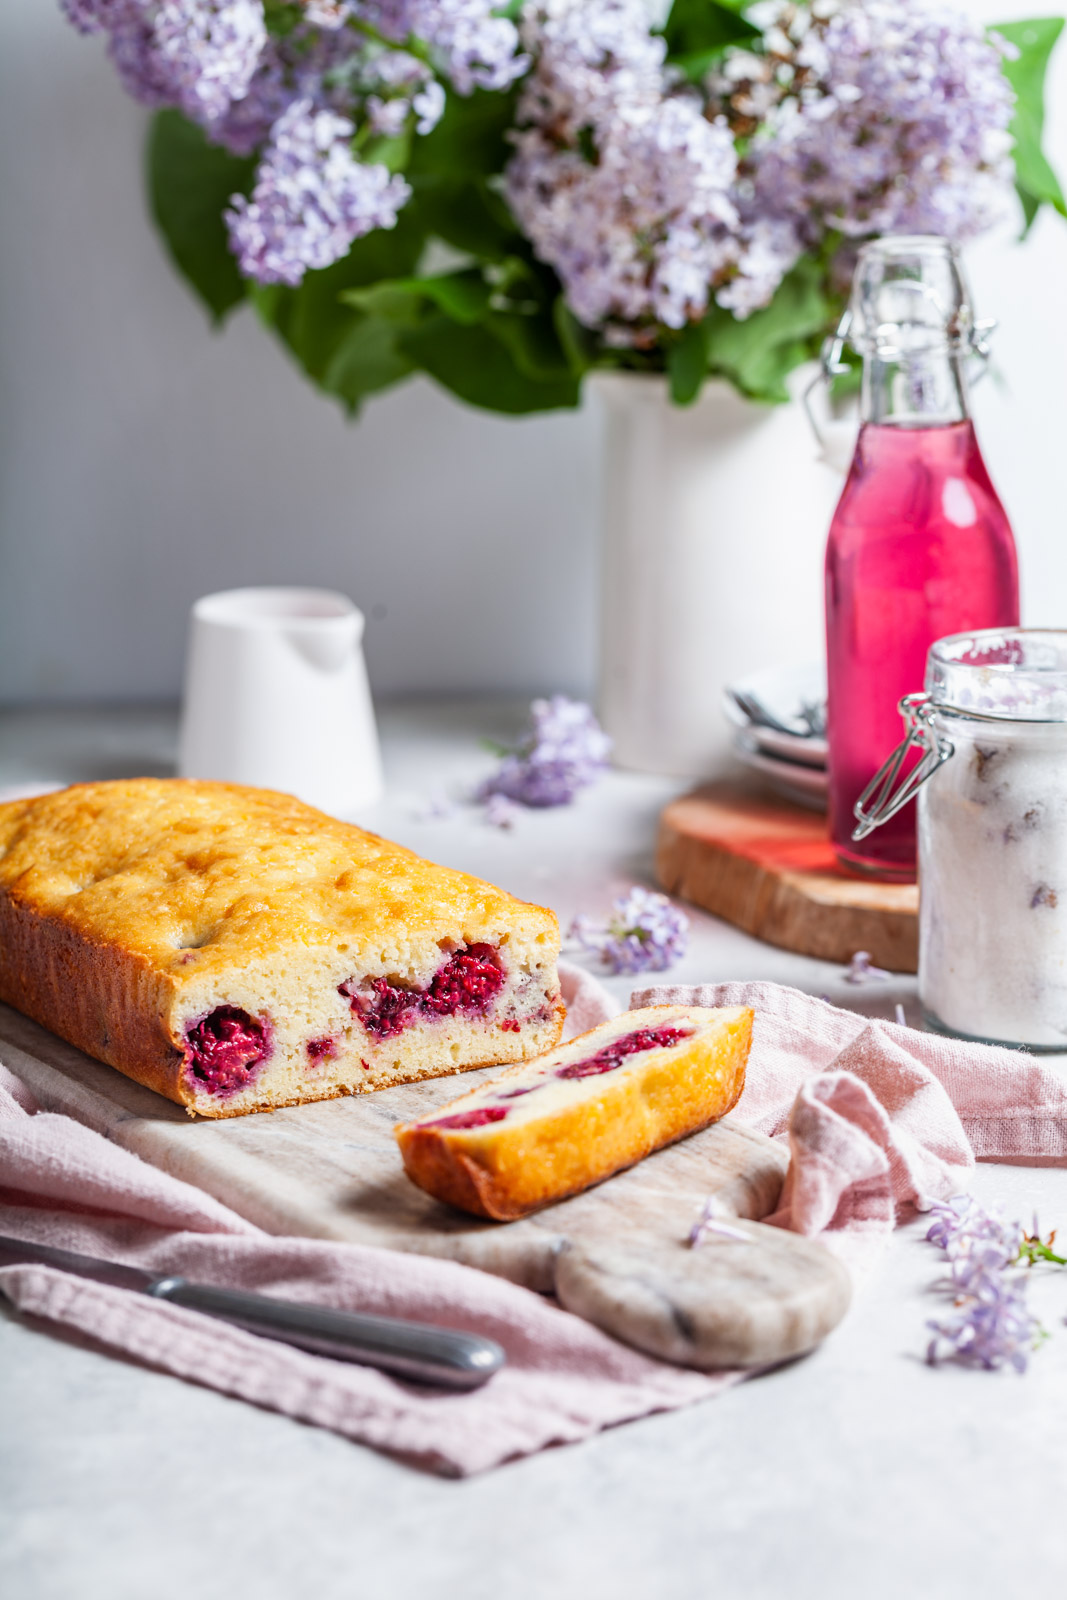 Lilac Lemon Blackberry Pound Cake With a Lilac Glaze